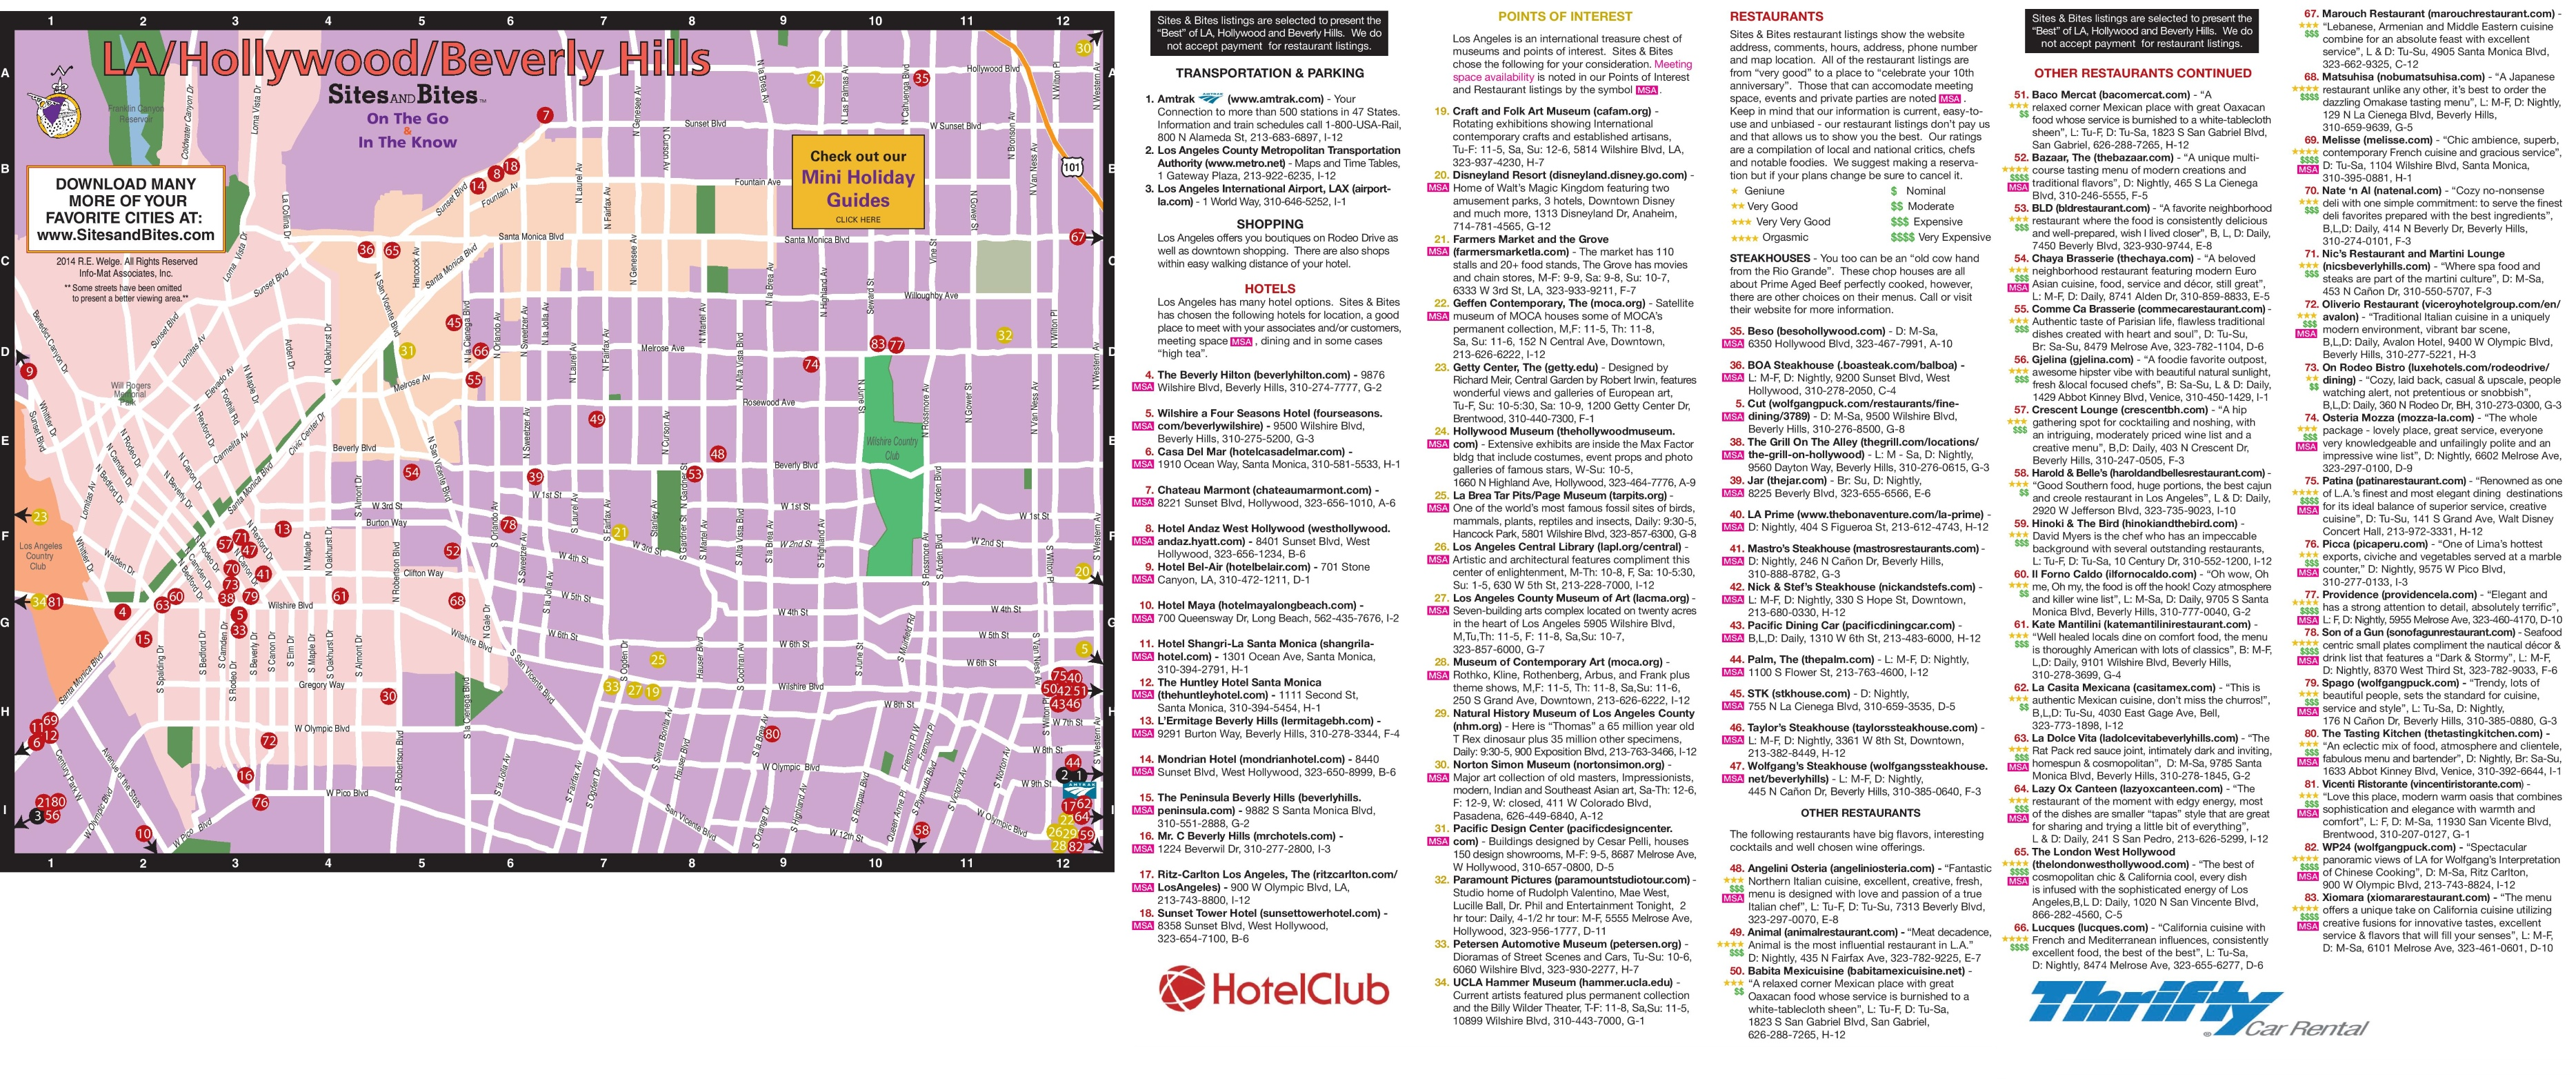 Map of hotels restaurants and sightseeing in Hollywood and Beverly